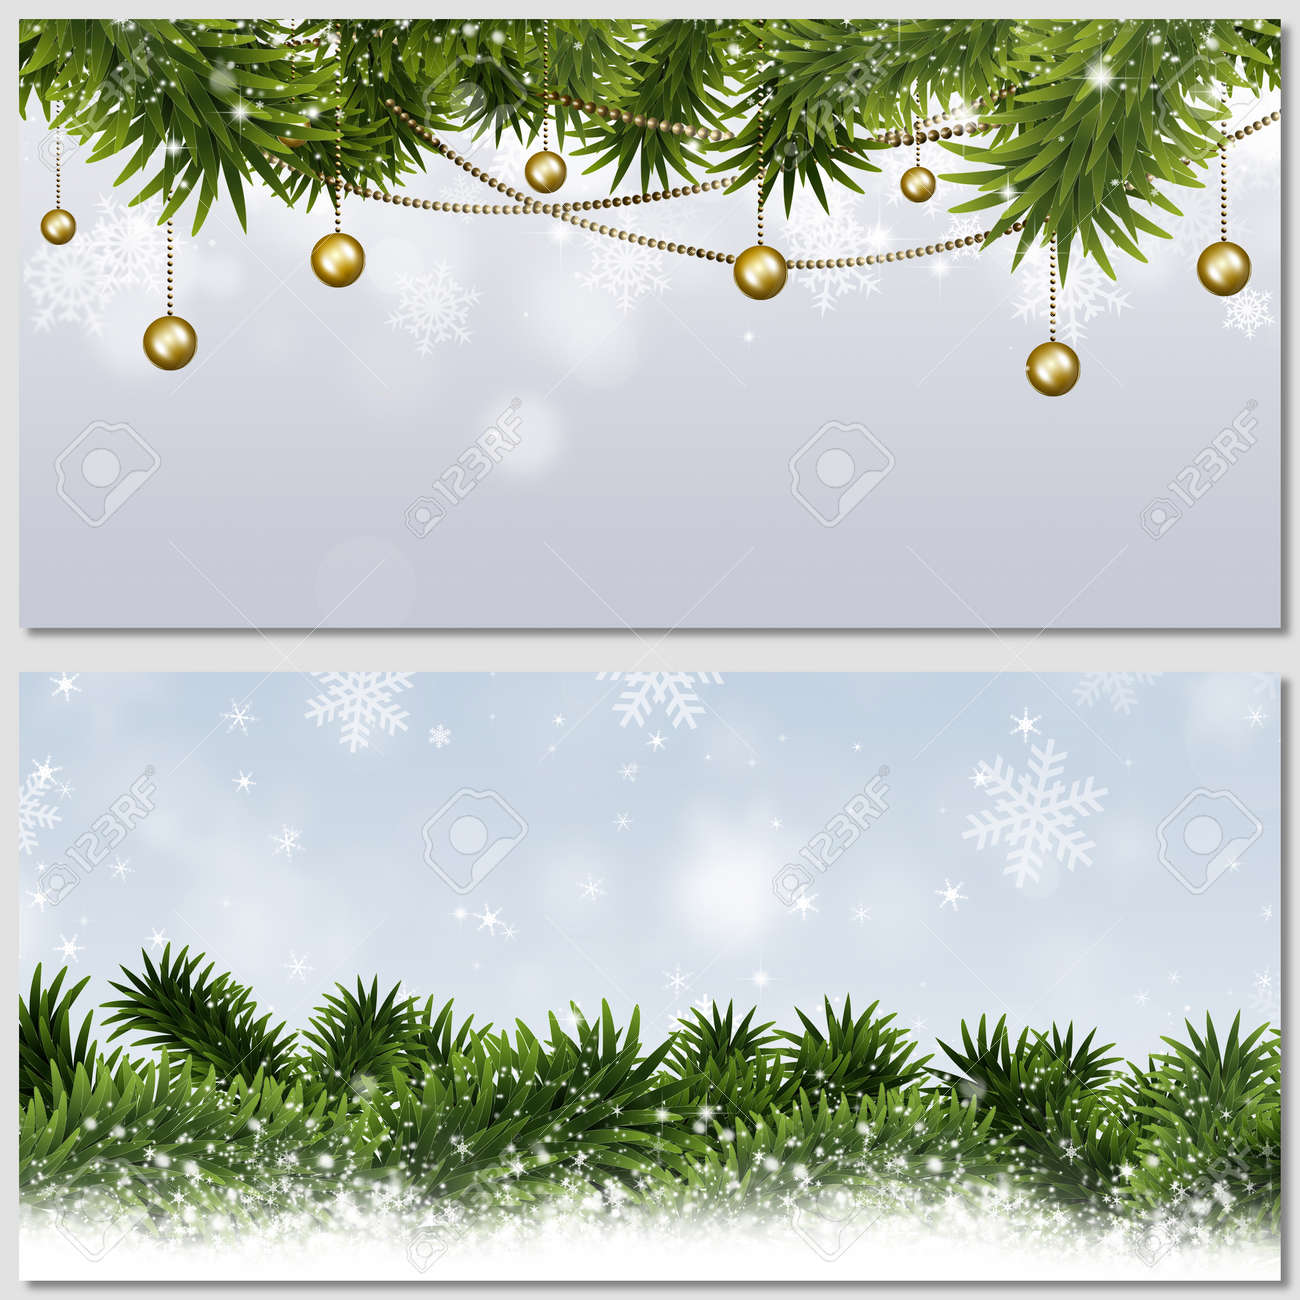 Winter Holiday Banners Mobile Samsung Banners